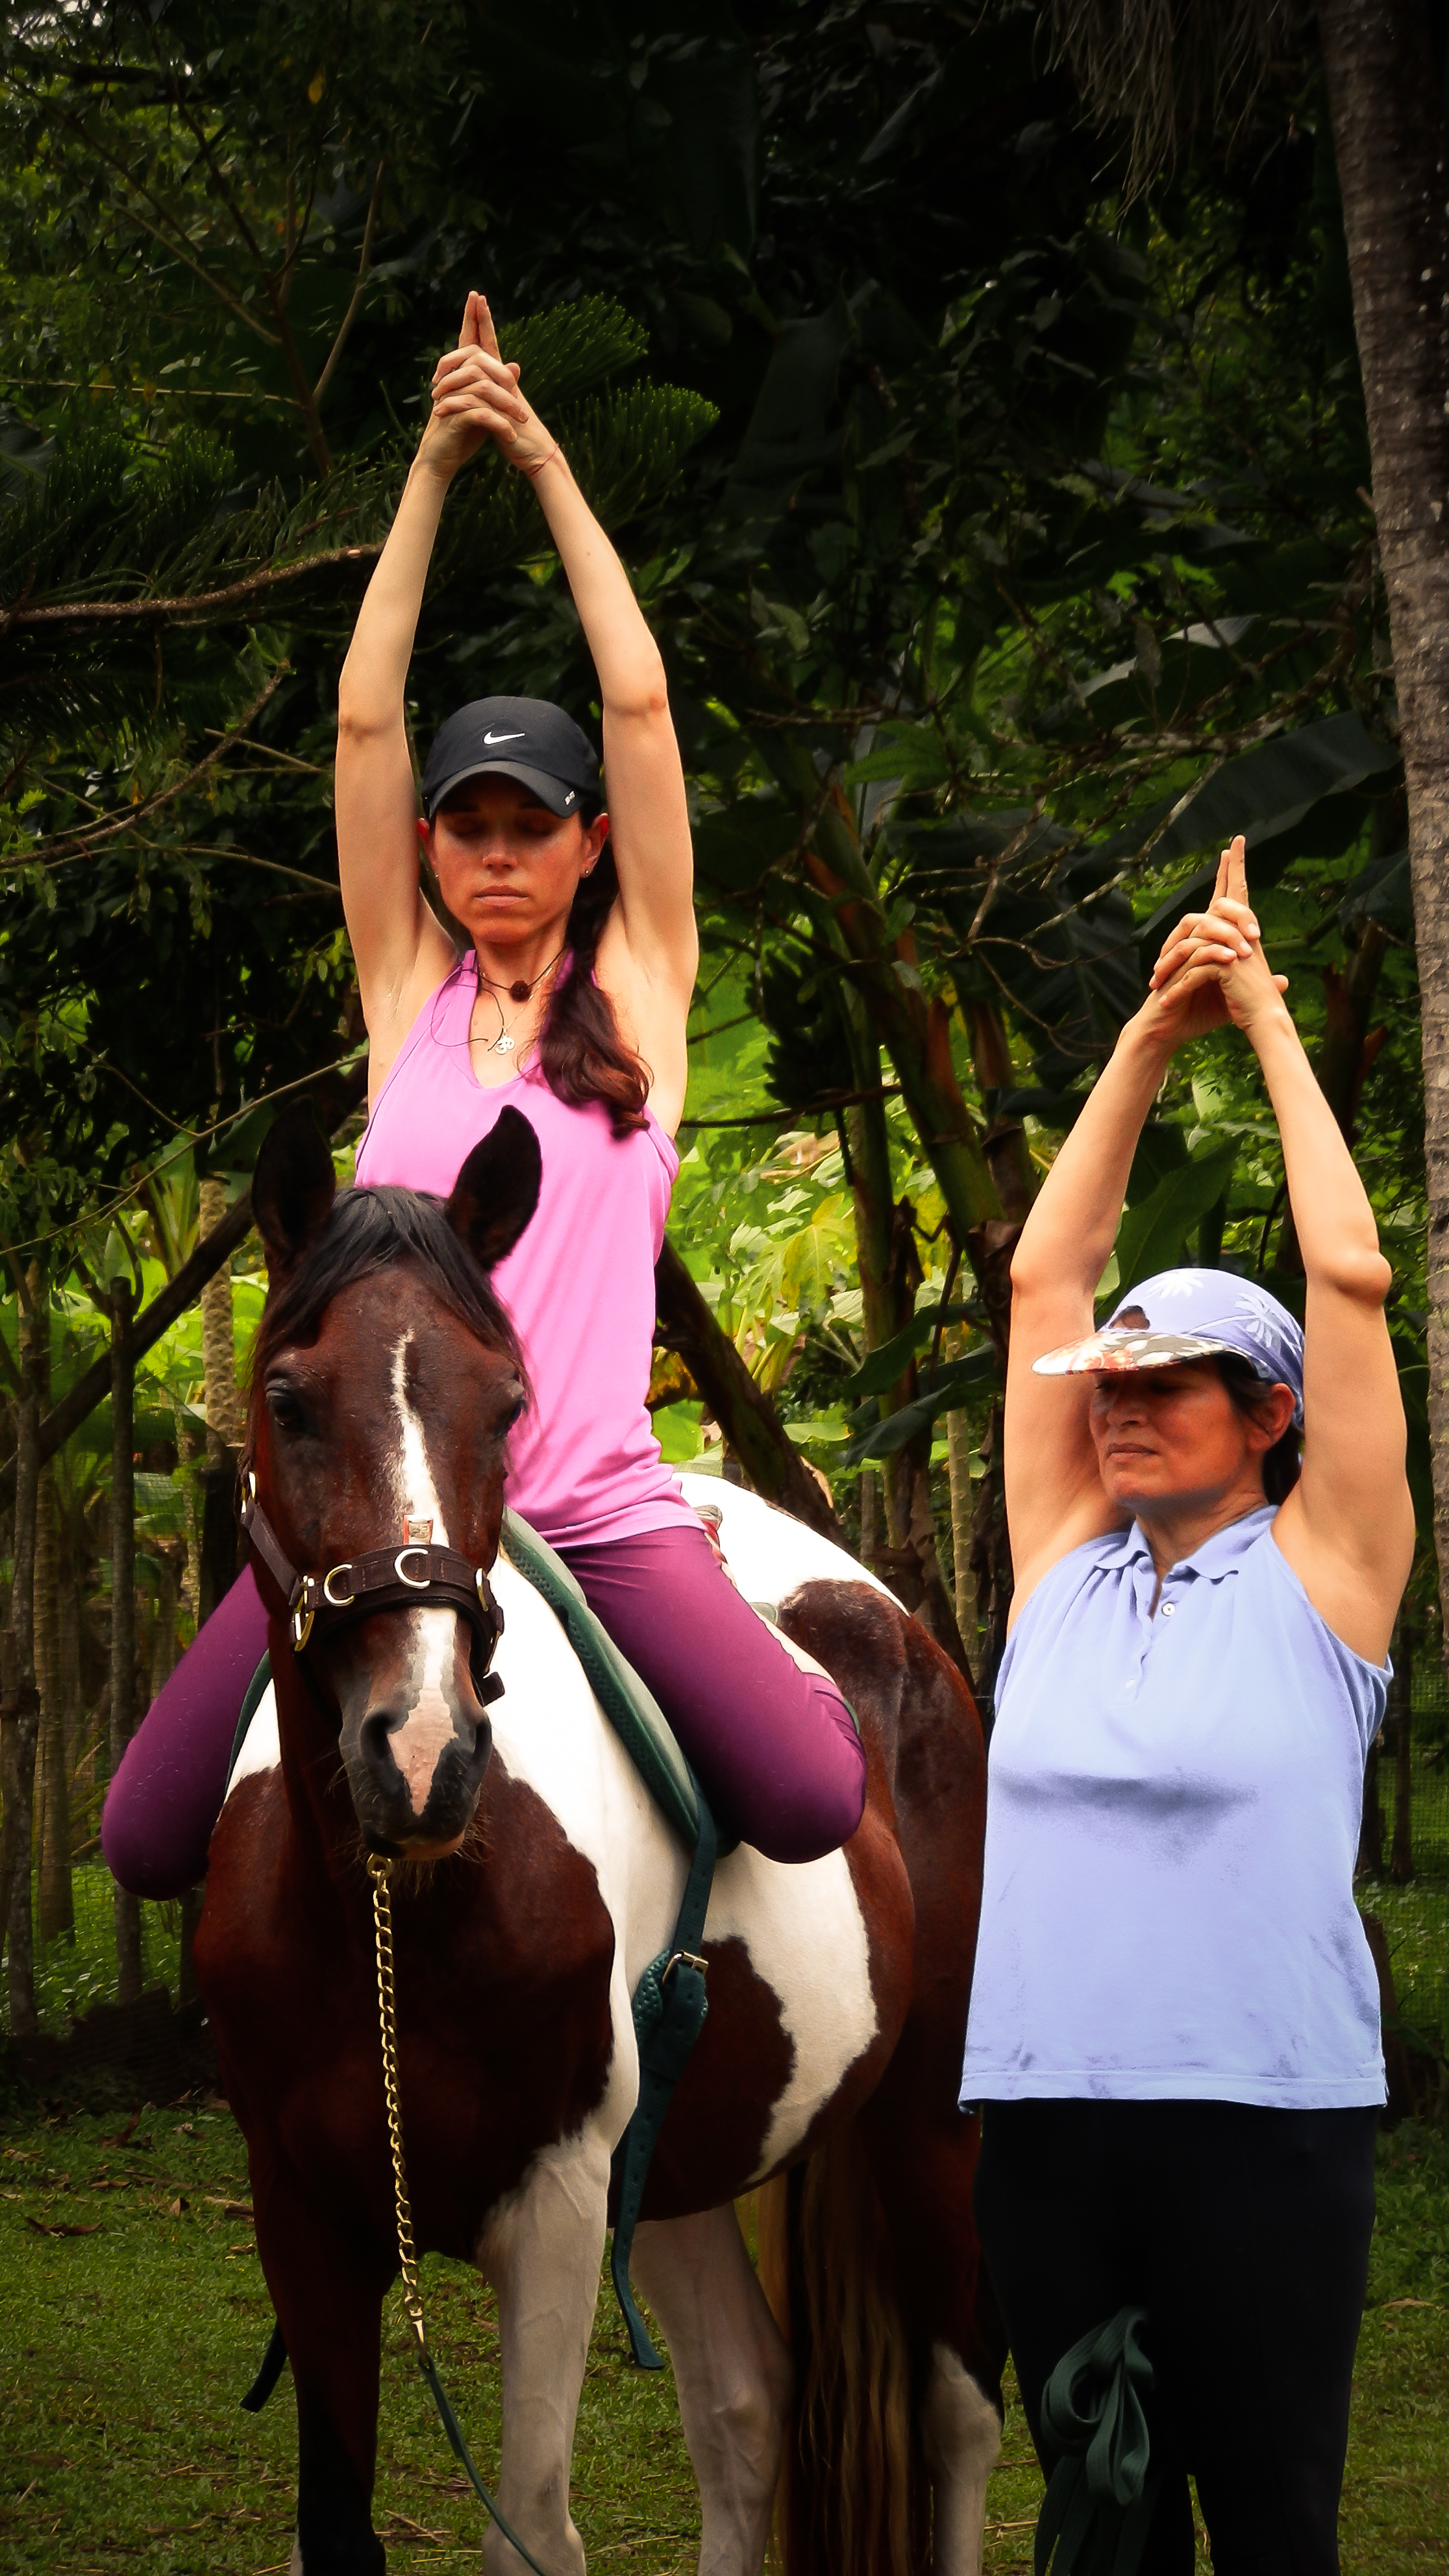 Breathing in rhythm and balance with the horse.